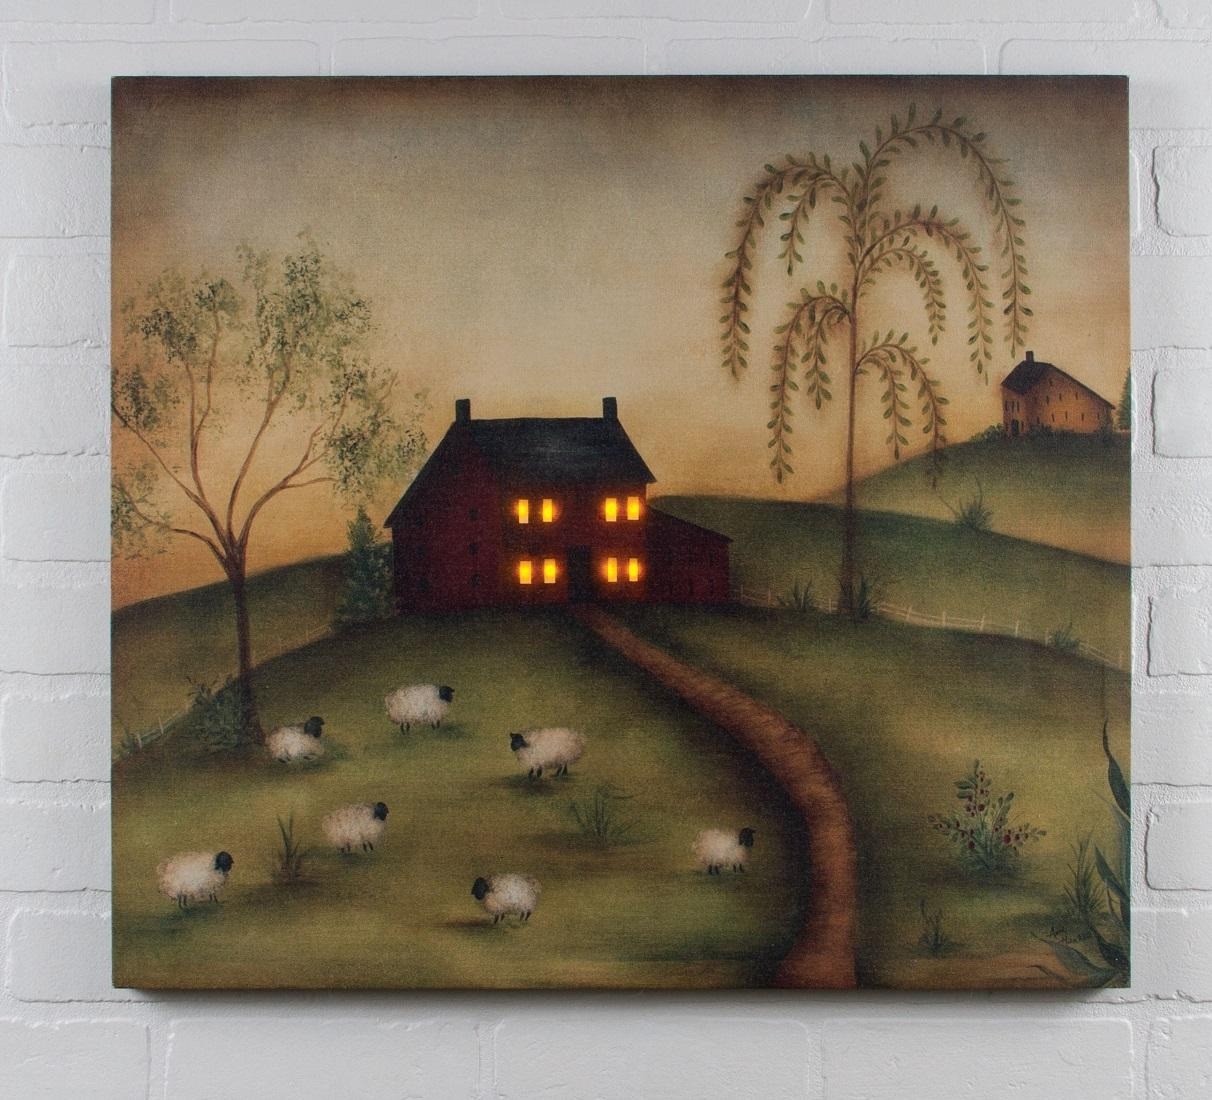 Radiance Lighted Canvas Good Life Folk Art Saltbox House, Sheep With Billy Jacobs Framed Wall Art Prints (View 7 of 20)